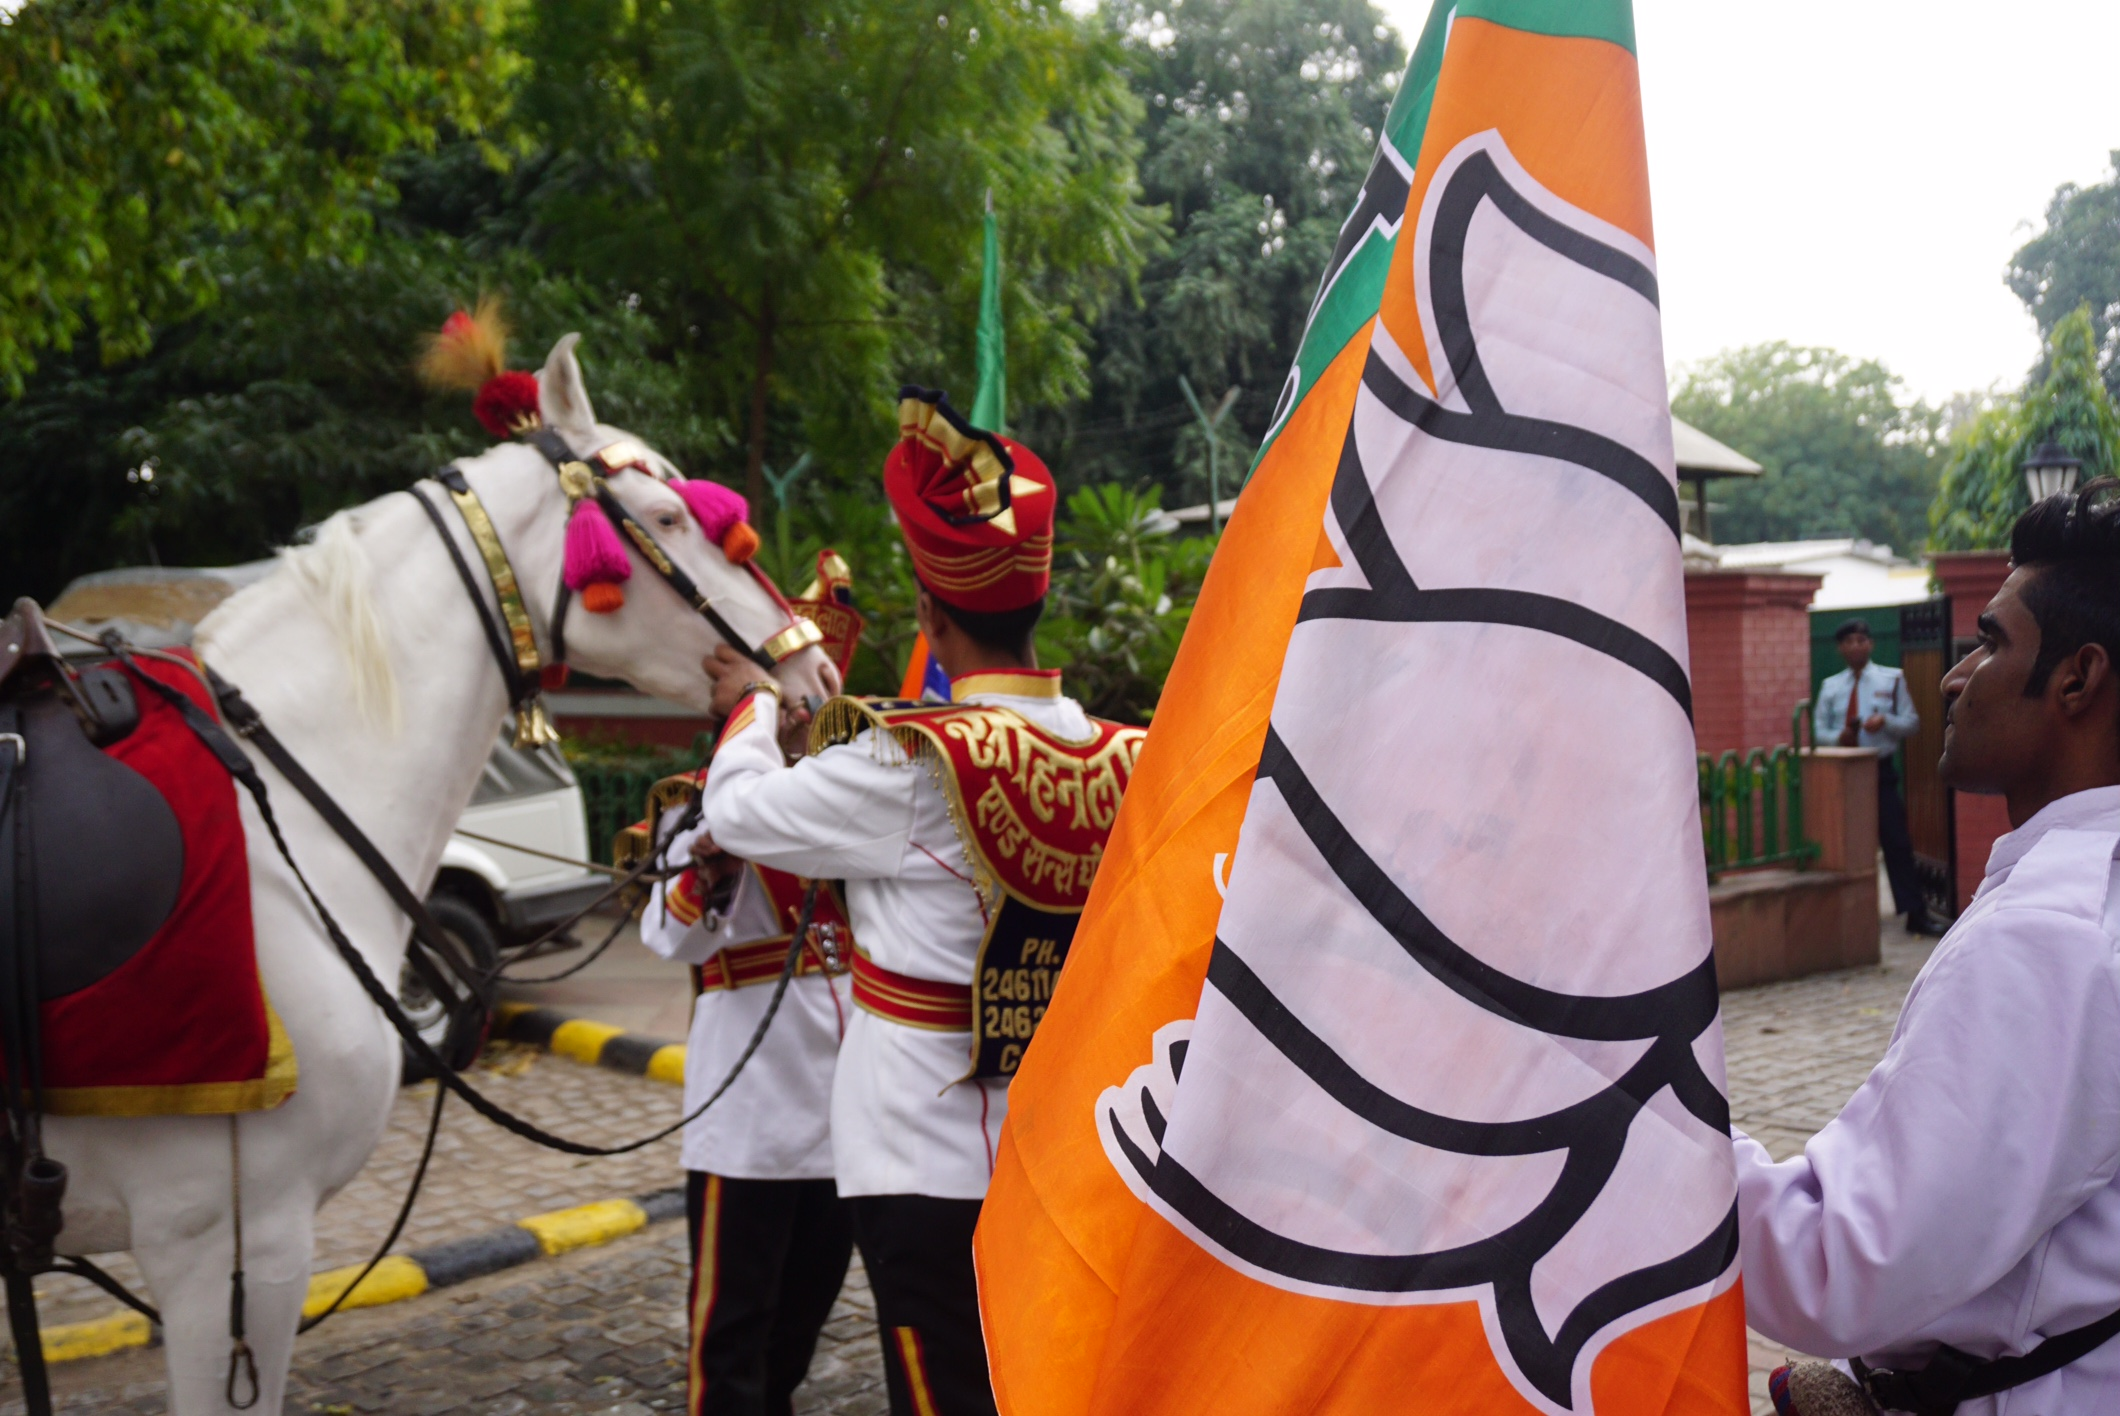 BJP workers celebrating outside the party office in New Delhi. Credit: Shome Basu